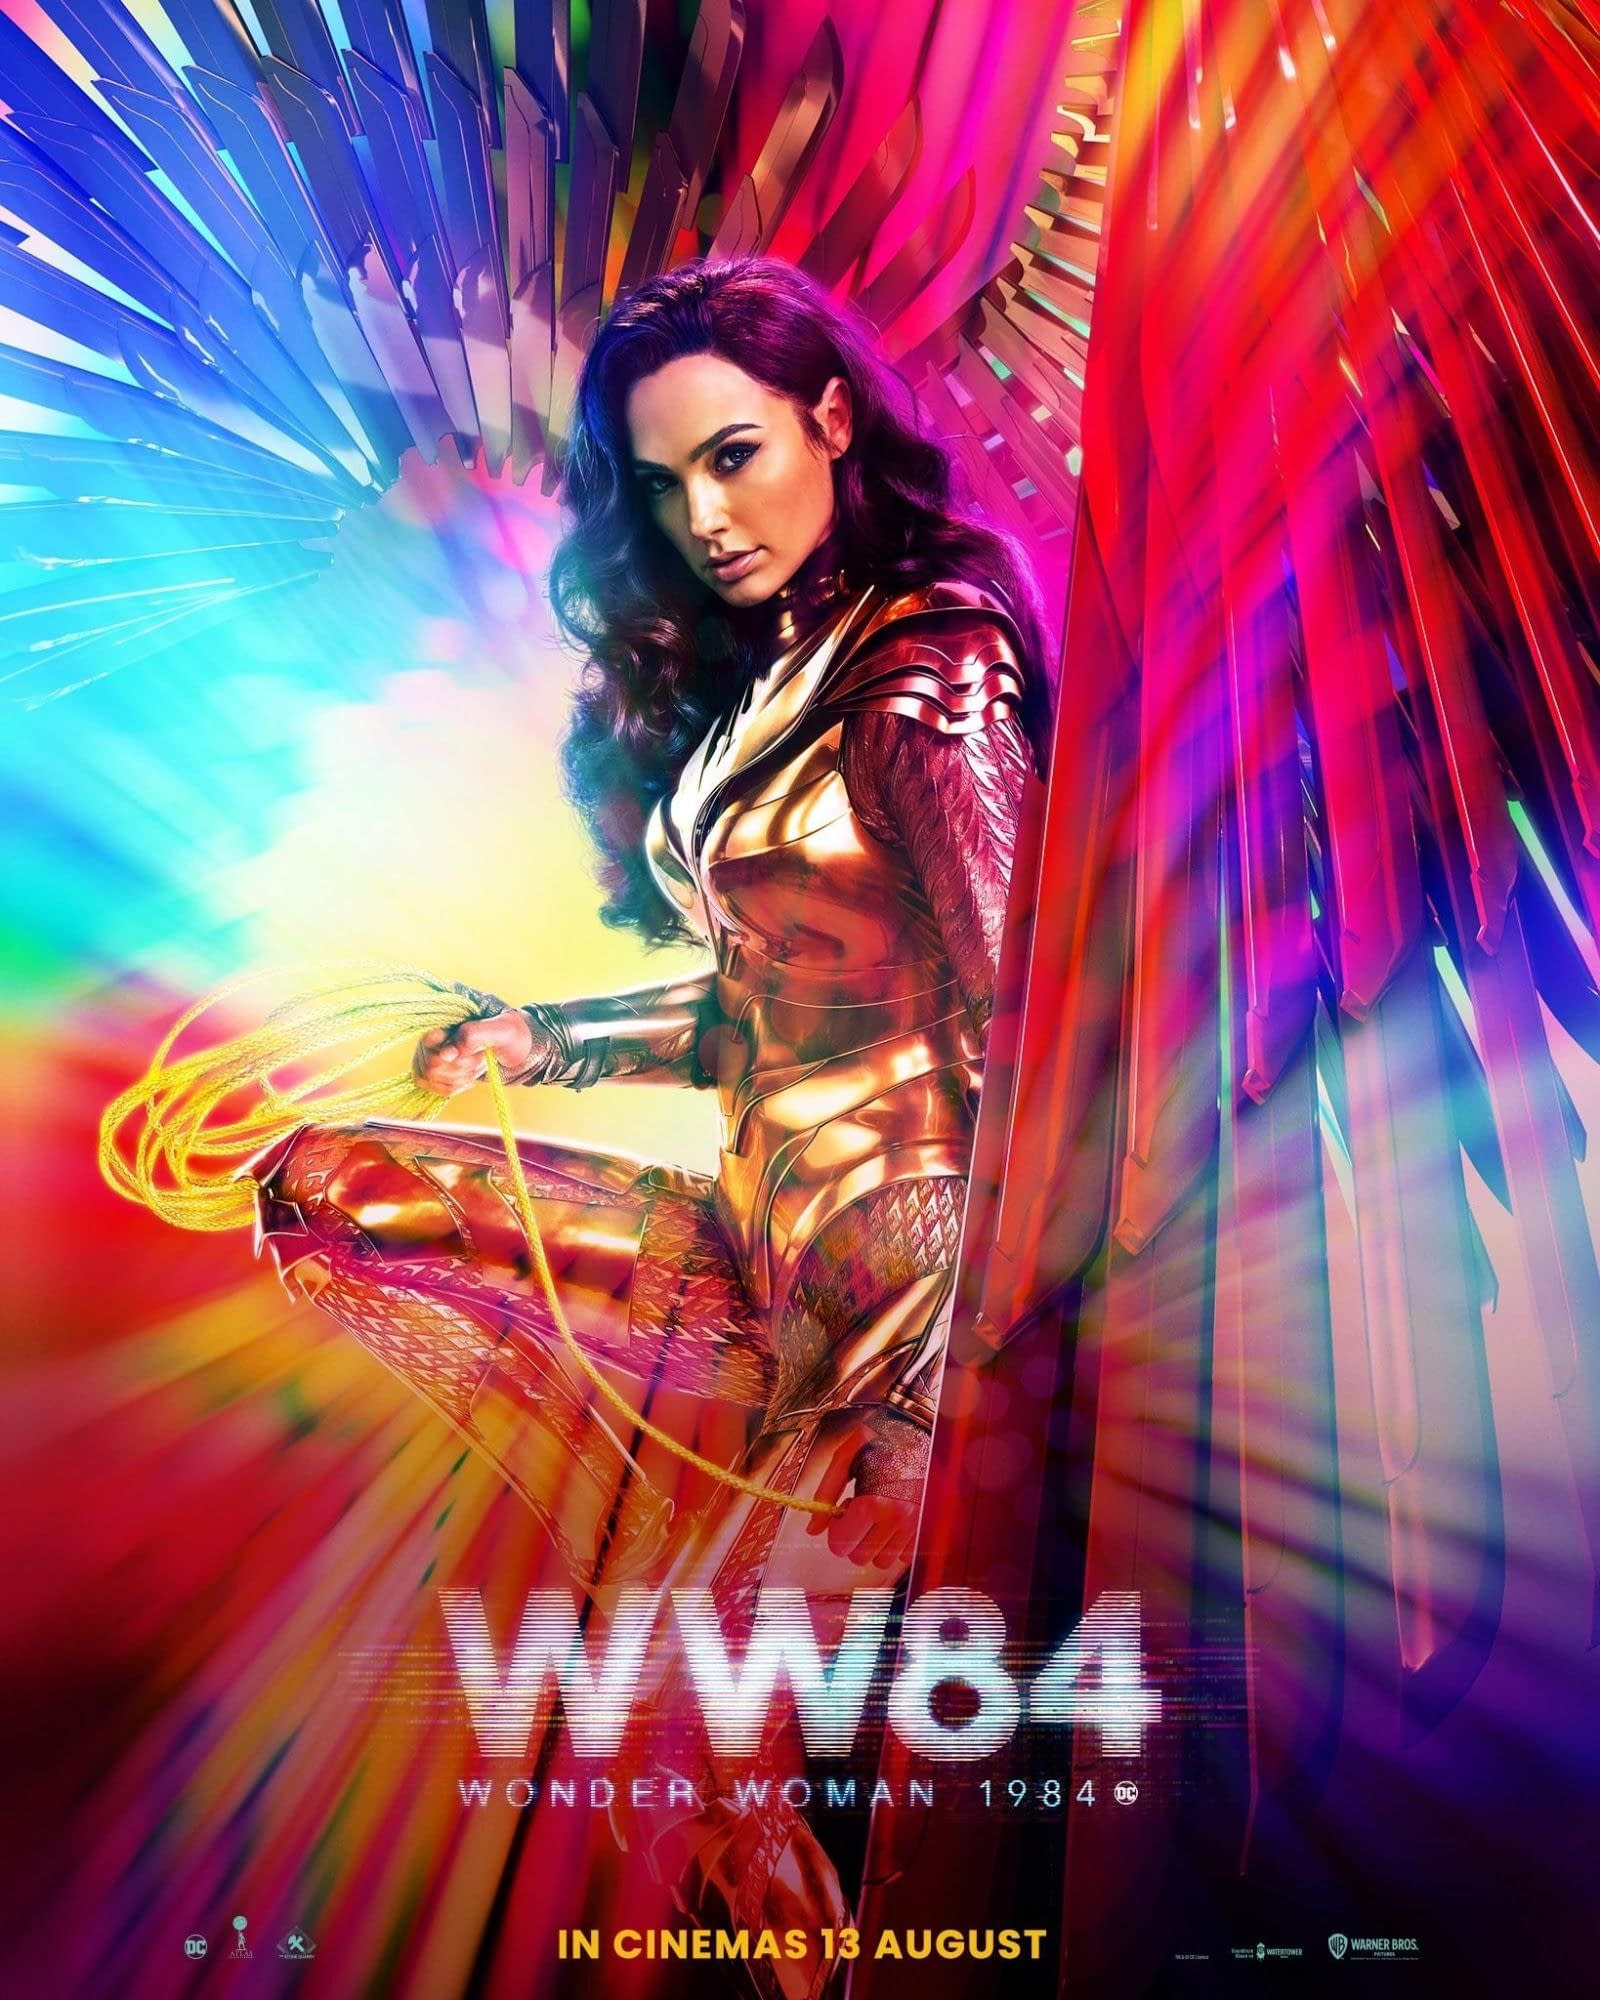 Wonder Woman 1984 poster for a new release date